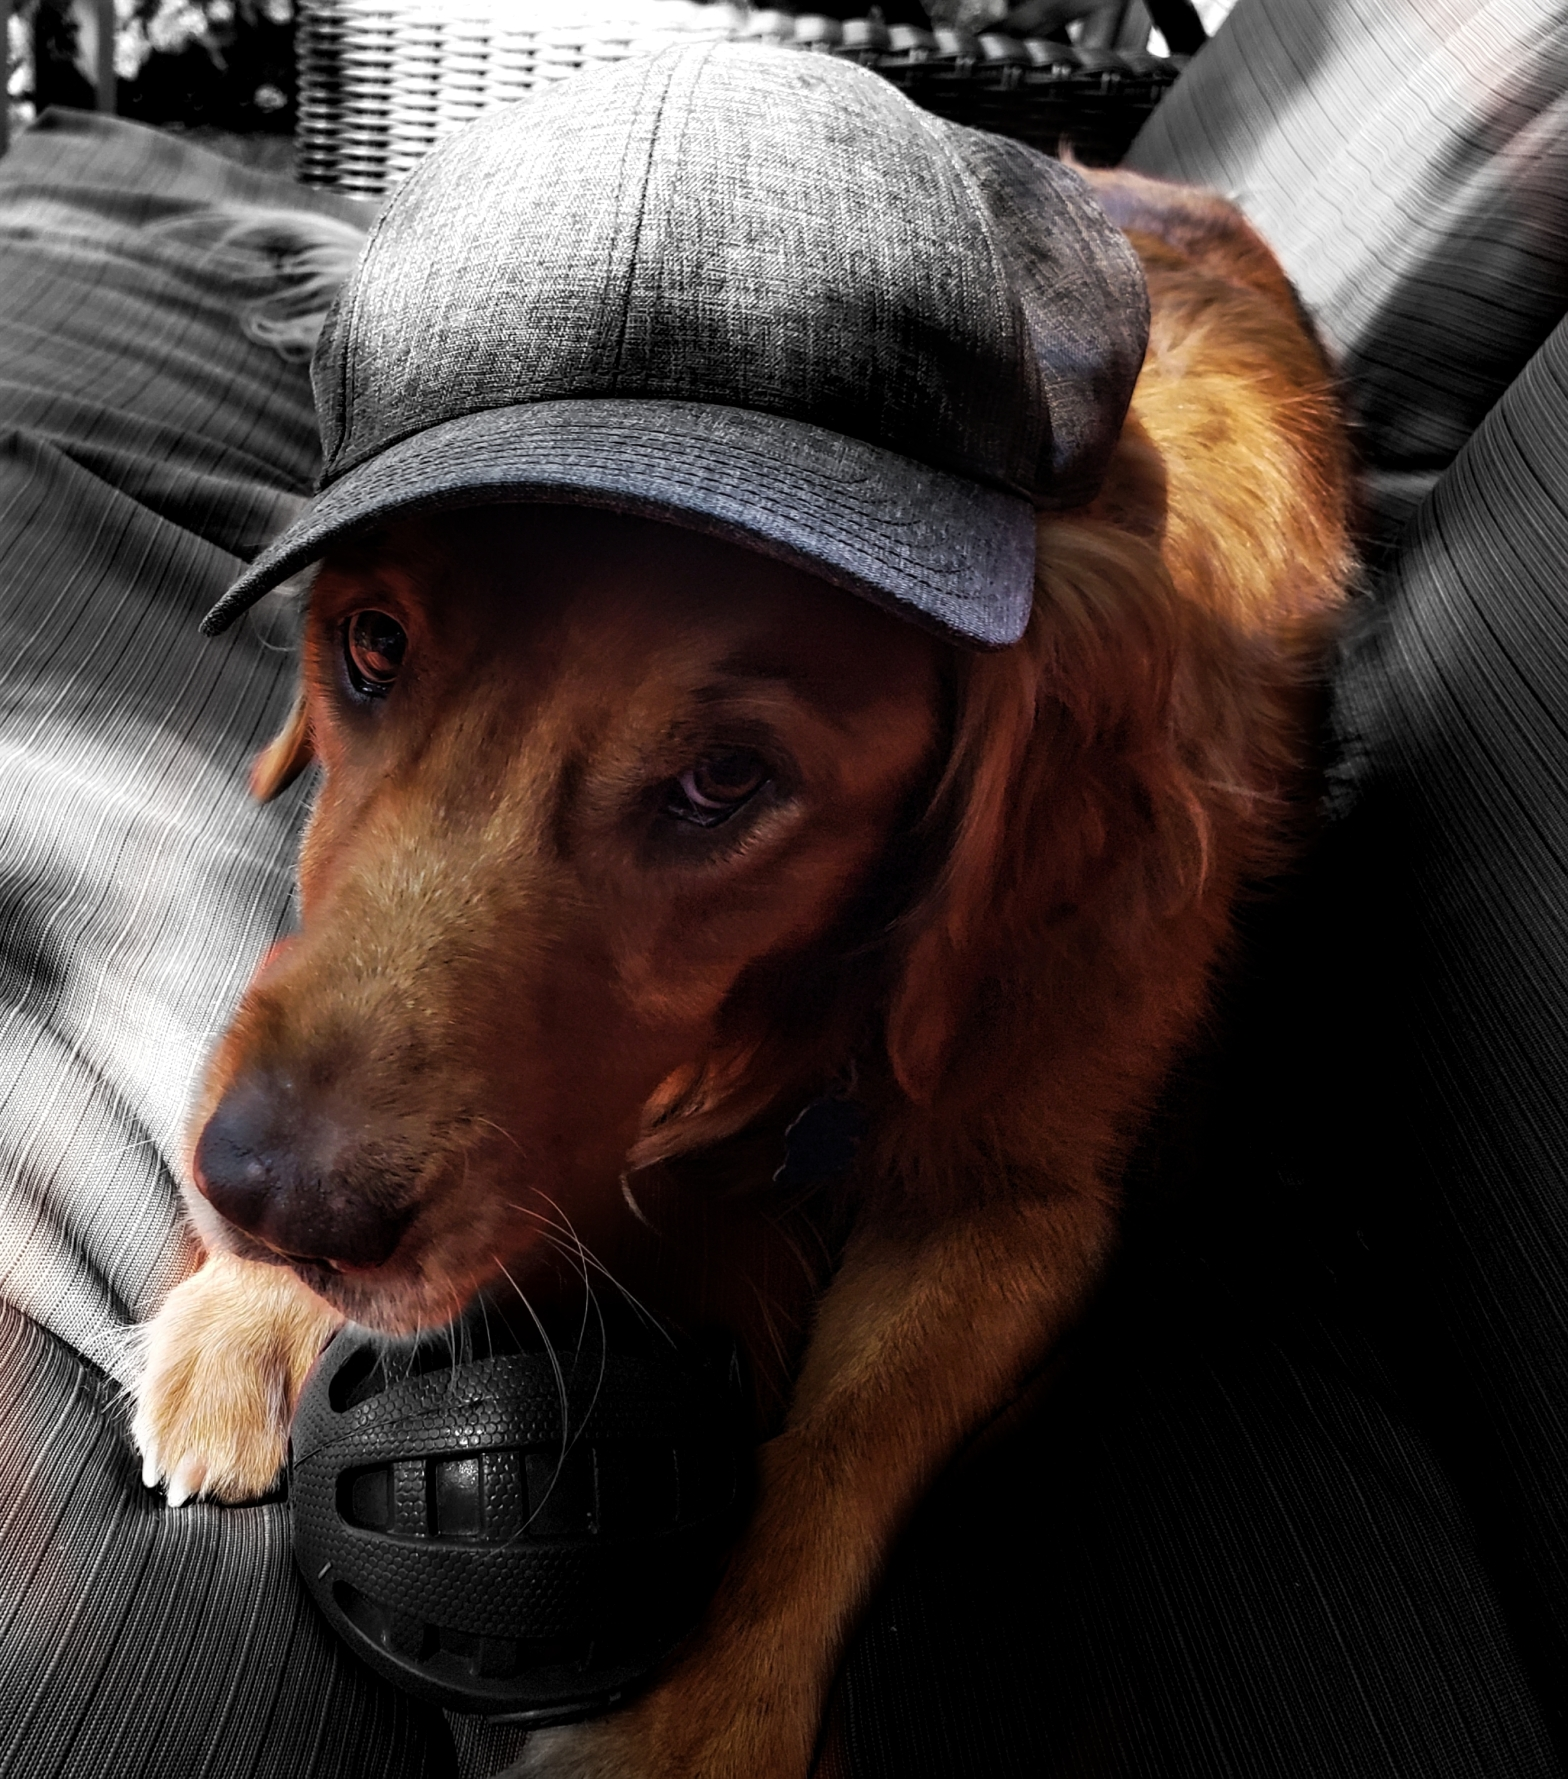 a cute golden retriever wearing a cap. He has a ball in between his two paws.